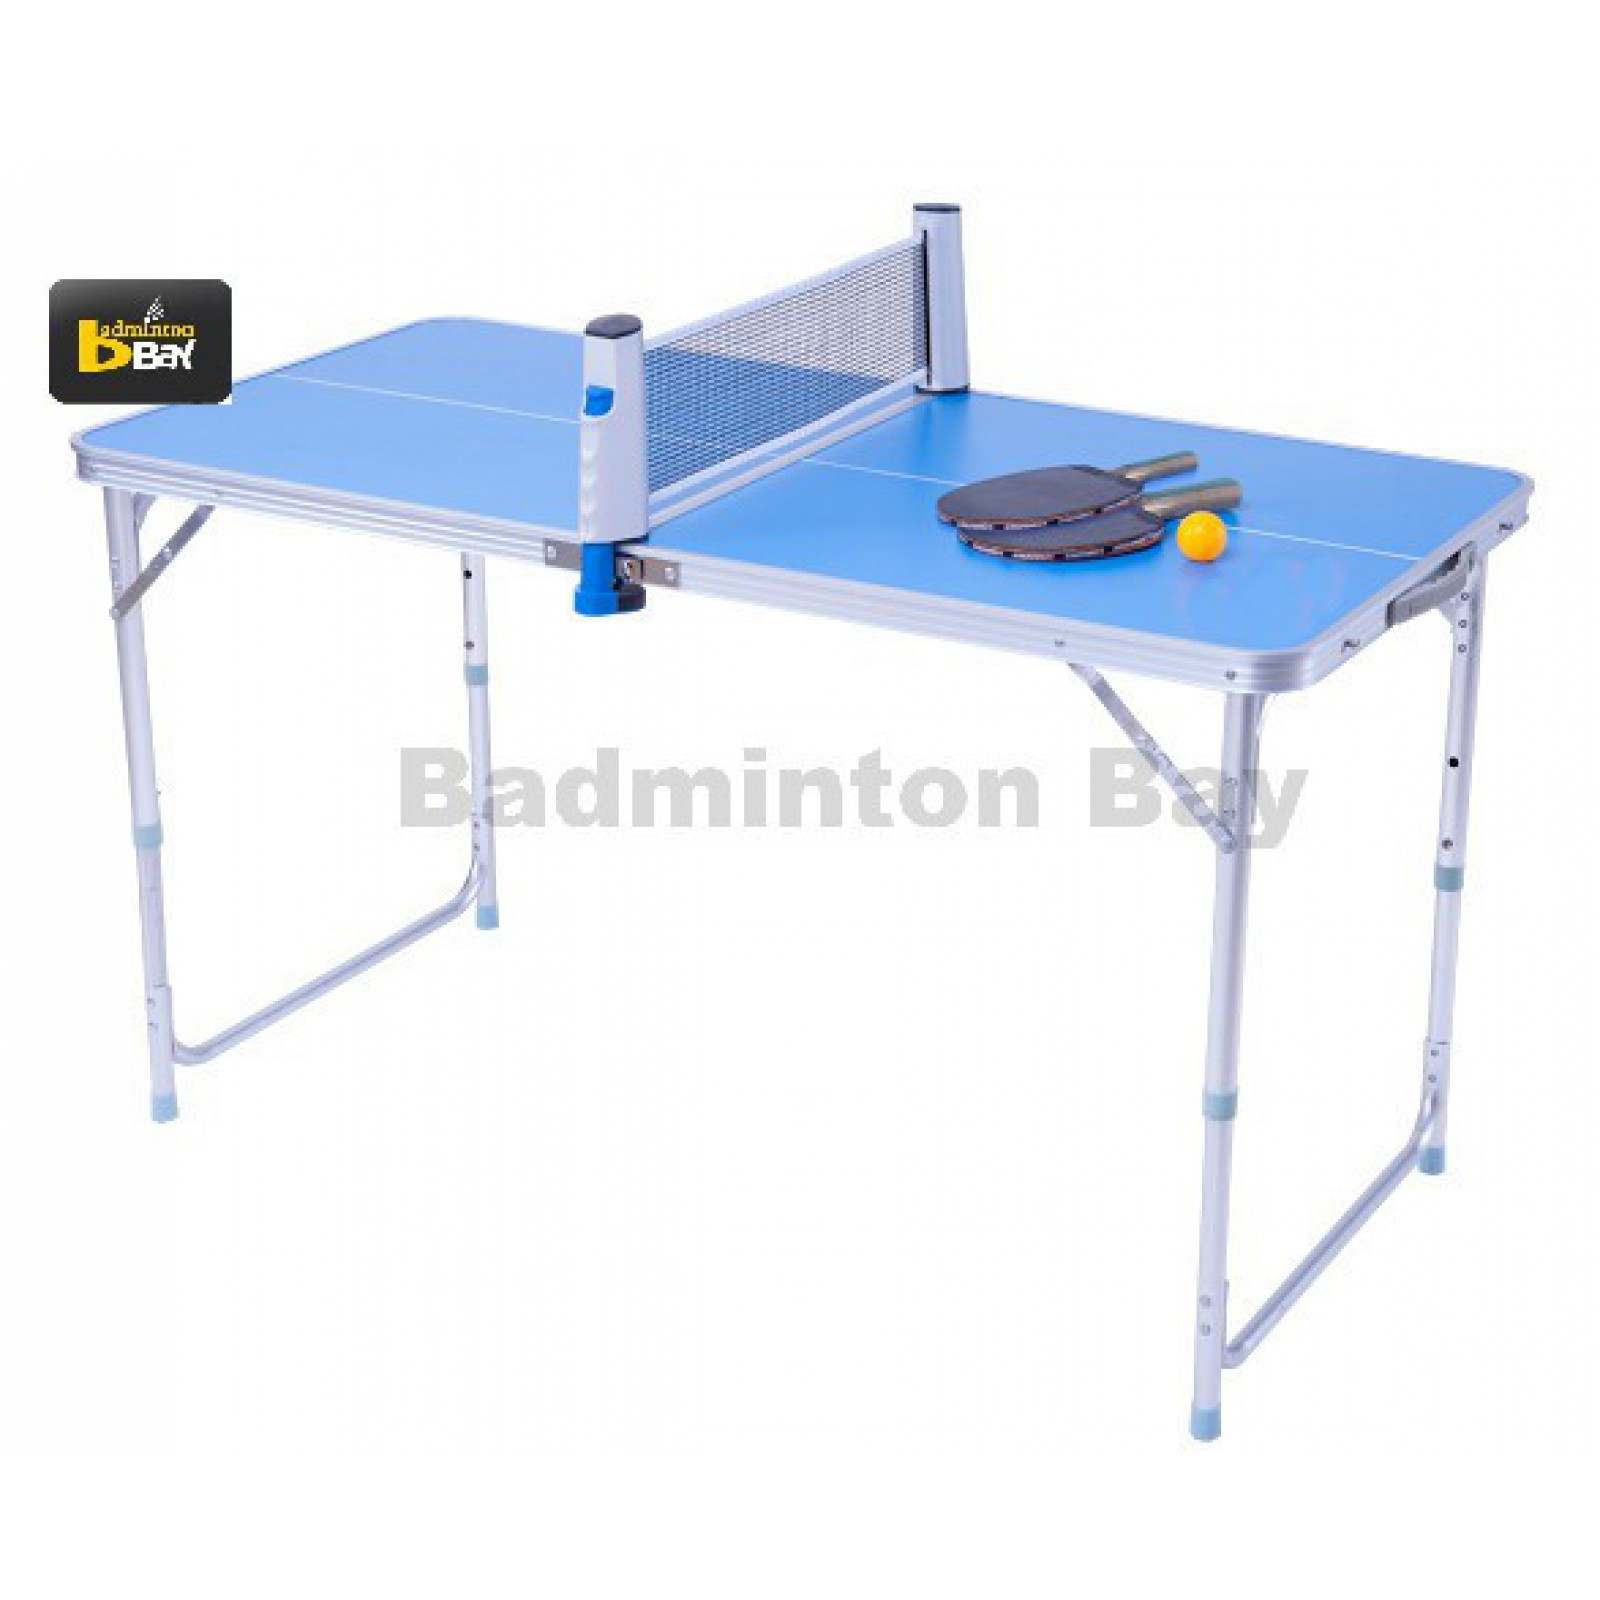 Merveilleux Abroz Mini Table Tennis Ping Pong Table For Kids And Family Outdoor Or  Indoor Small Spaces